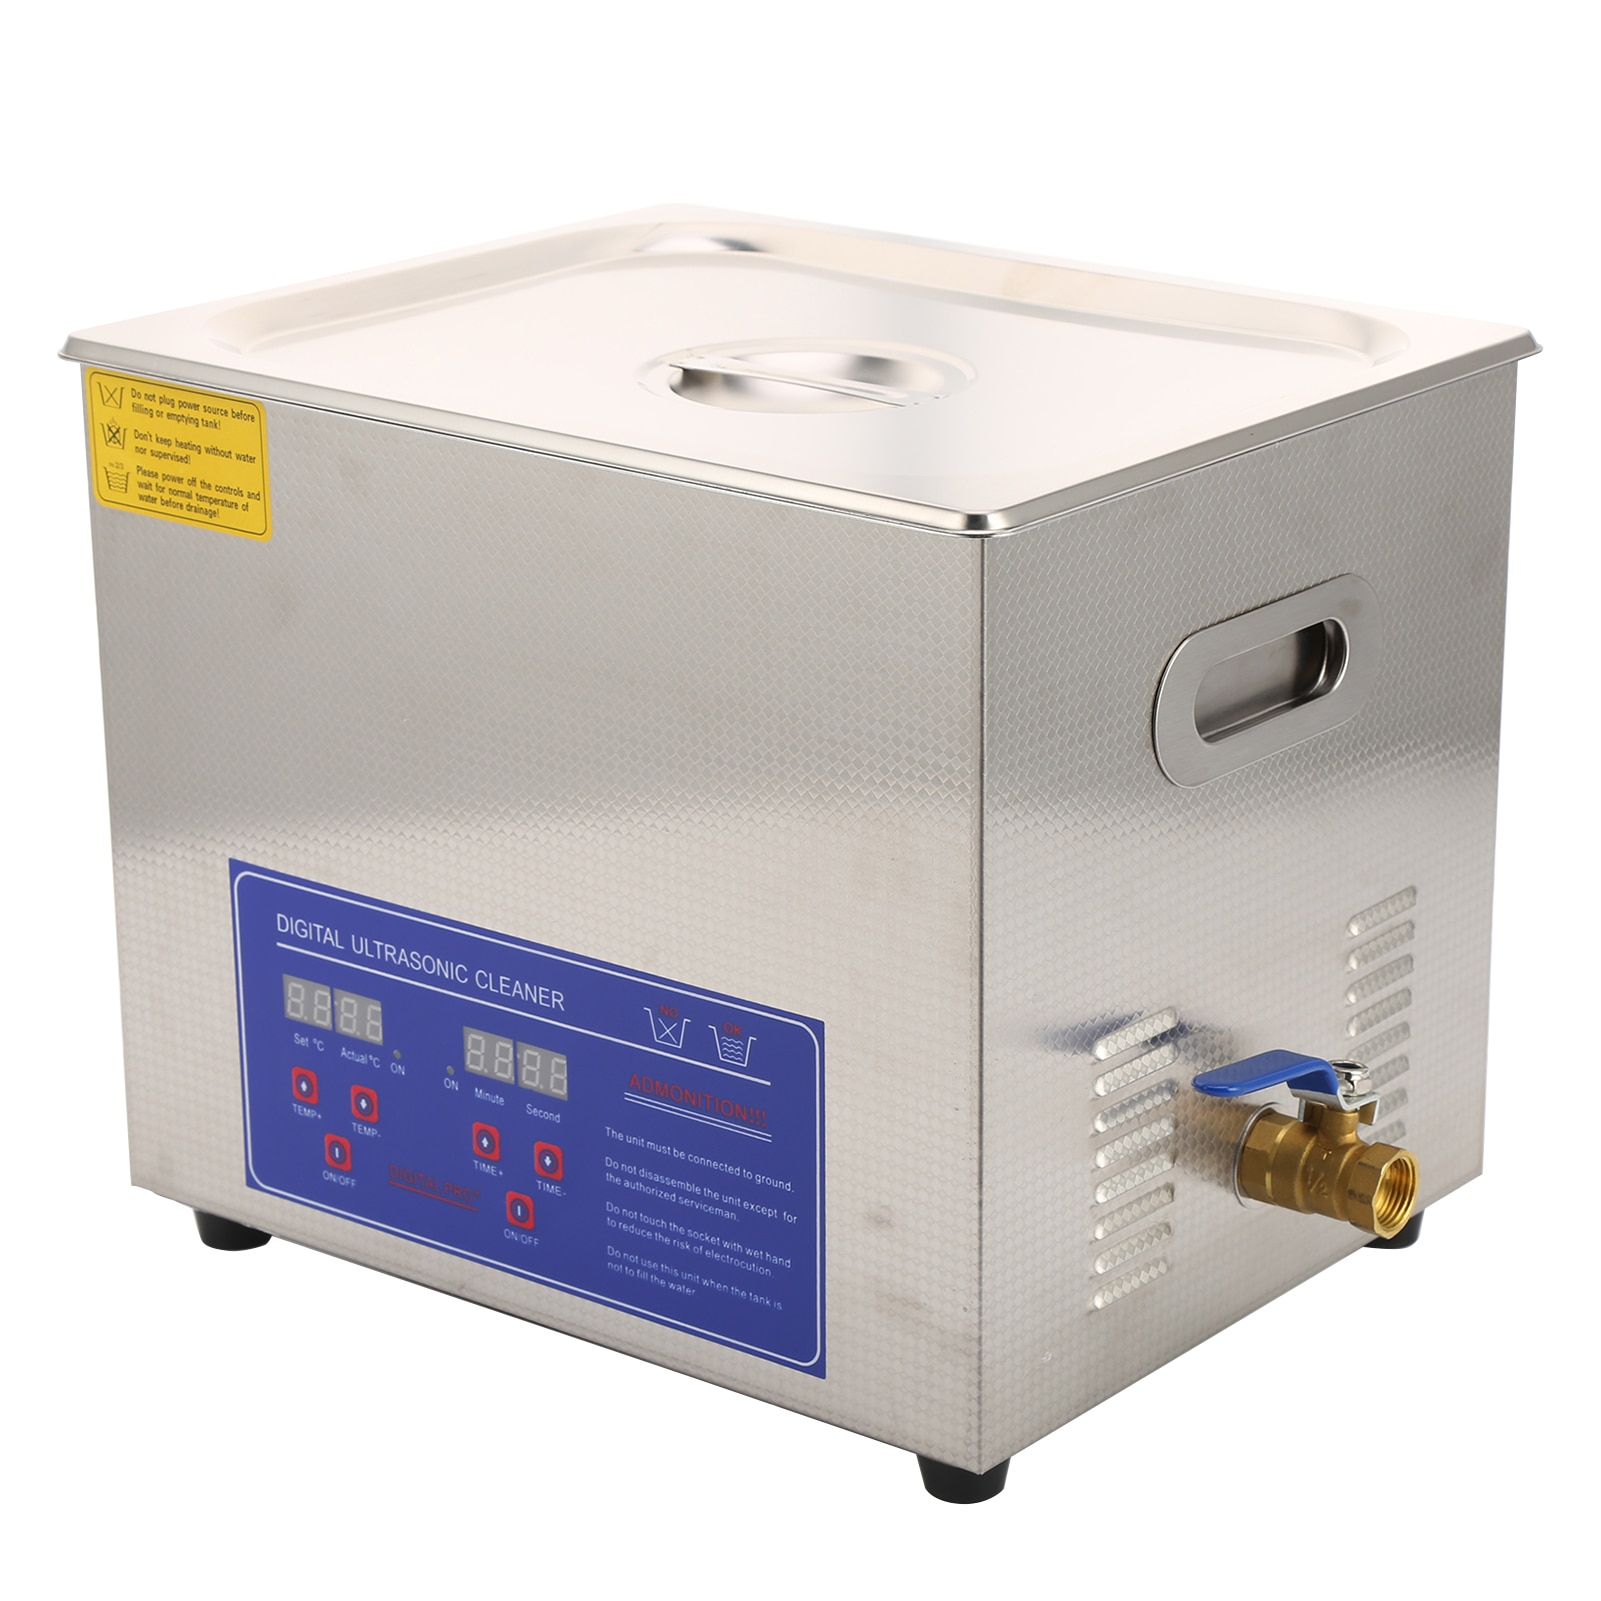 Digital LCD Cleaning Equipment 10 Liters Ultrasonic Cleaner Bath Tank With 10L Cleaning Basket